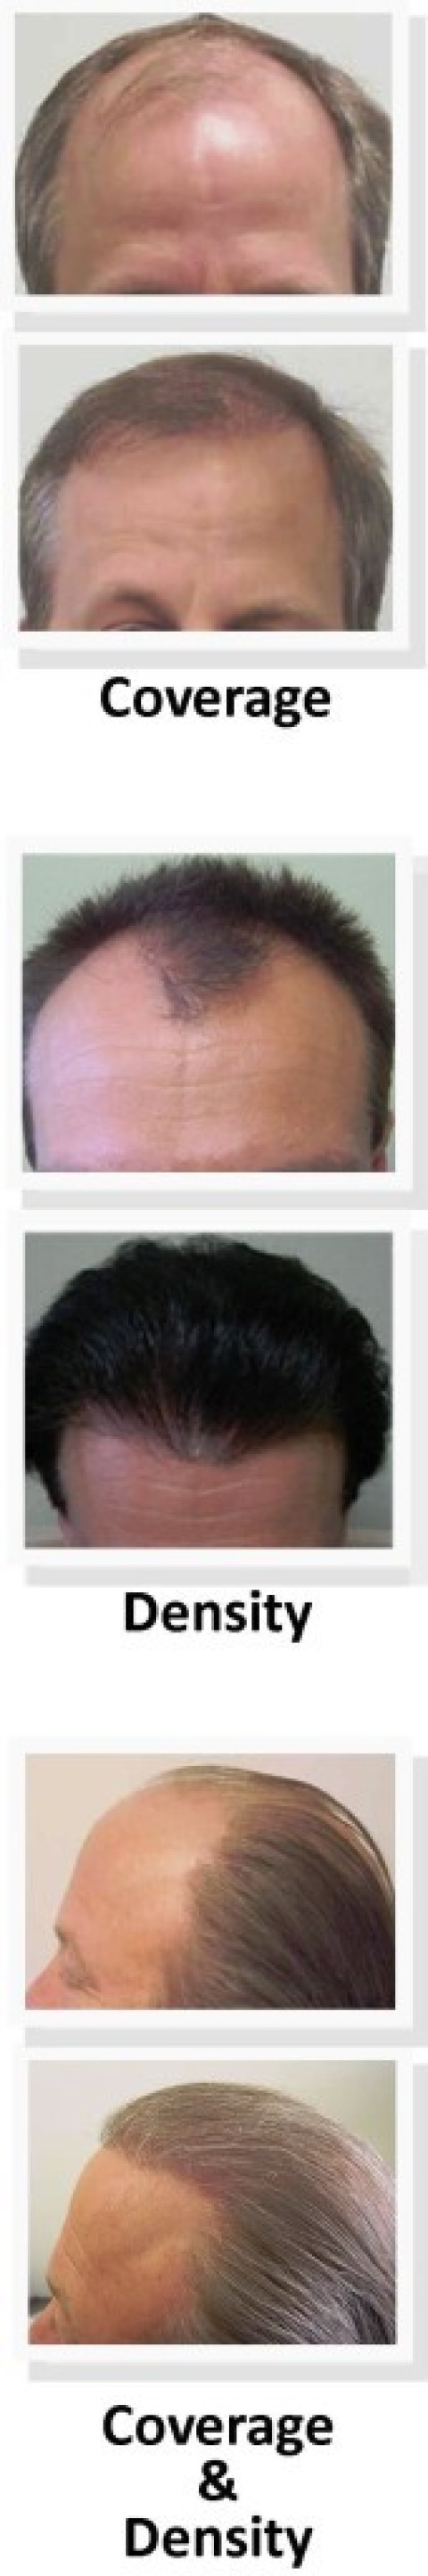 Marketplace News: Local office offers low-cost hair restoration